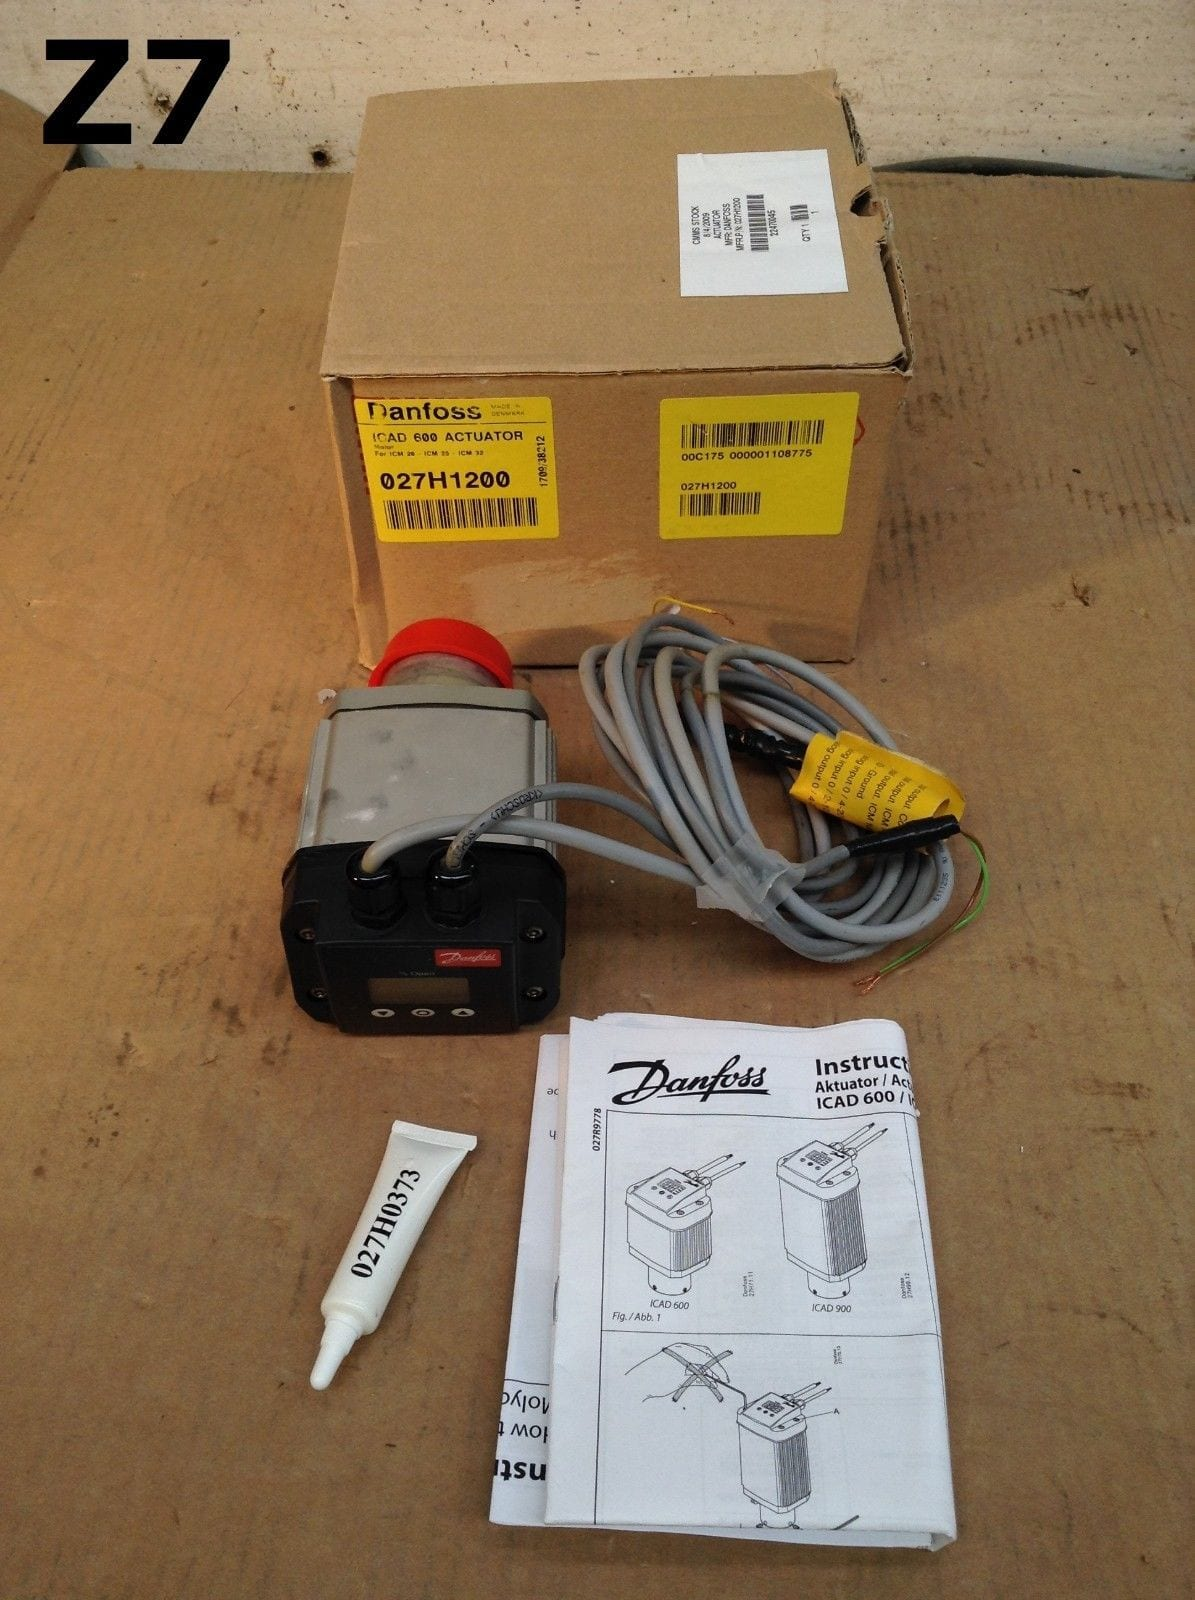 Icm 255 Fan Relay Wire Diagram Data Schema Danfoss Wiring 027h1200 Icad 600 Actuator For 20 25 32 Nib Moses B Rh Mbglick Com Chart